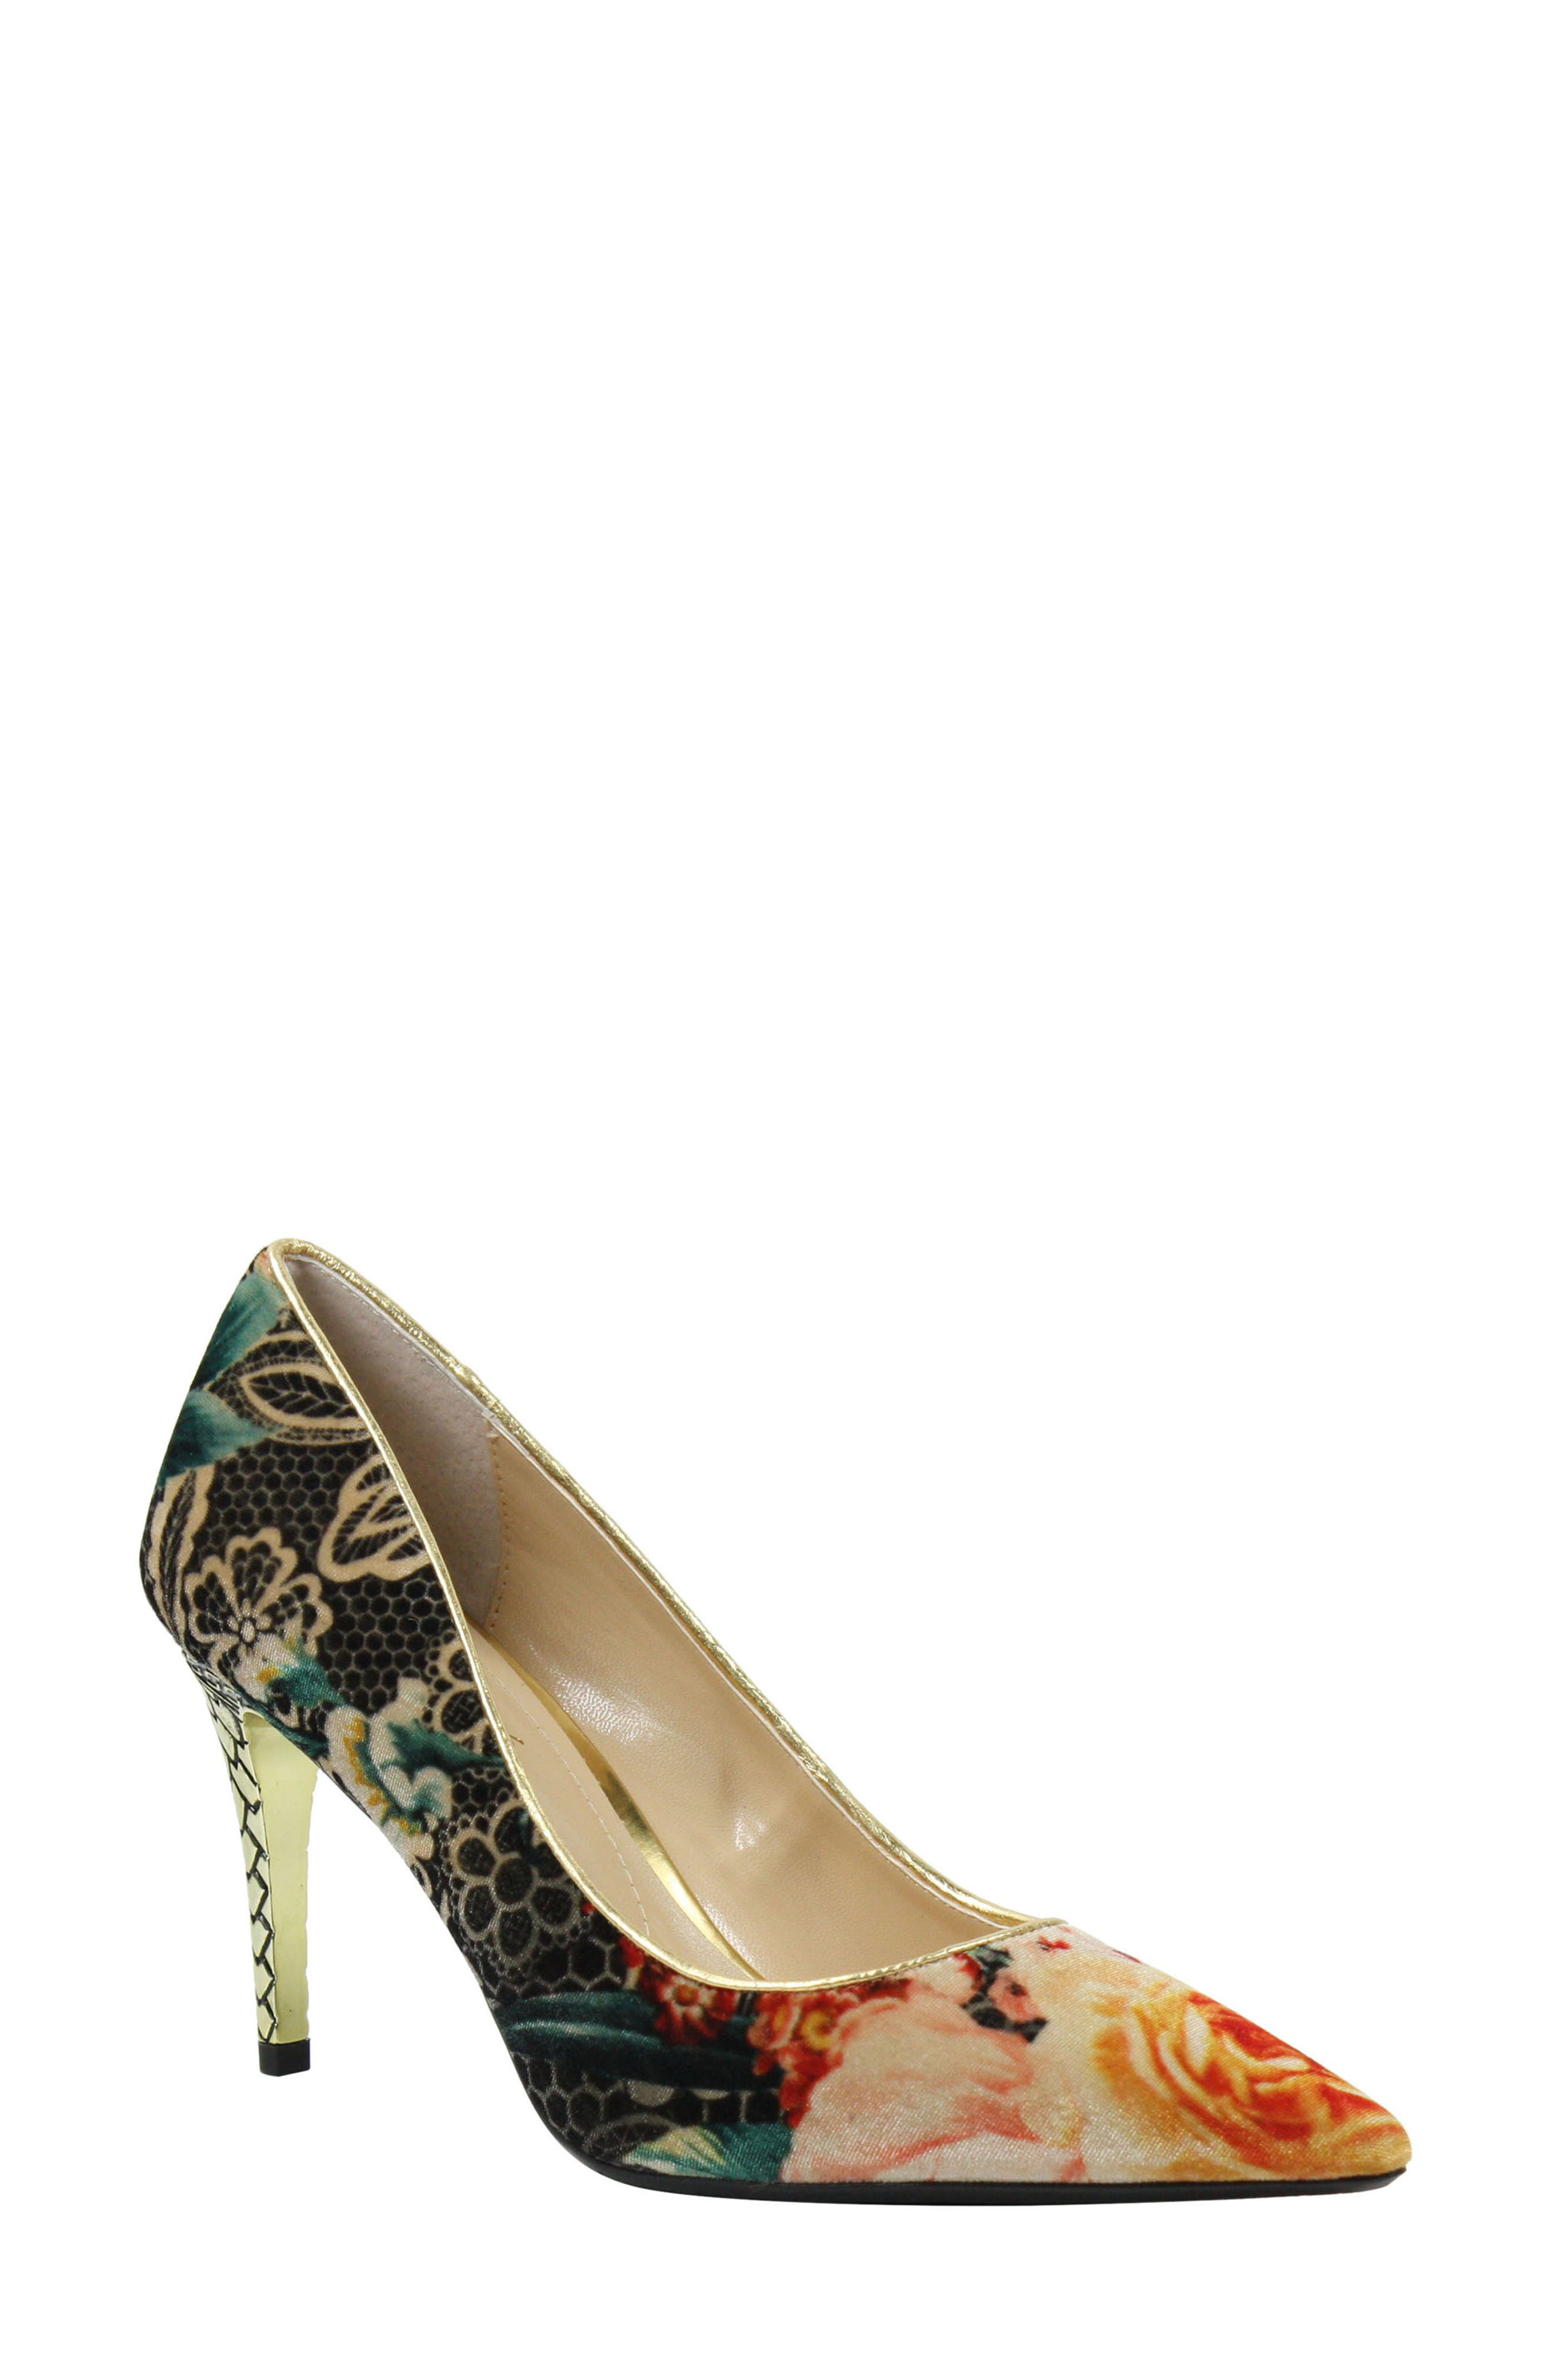 J. RENEÉ, 'Maressa' Pointy Toe Pump, Main thumbnail 1, color, BLACK/ TAUPE/ CORAL/ GOLD